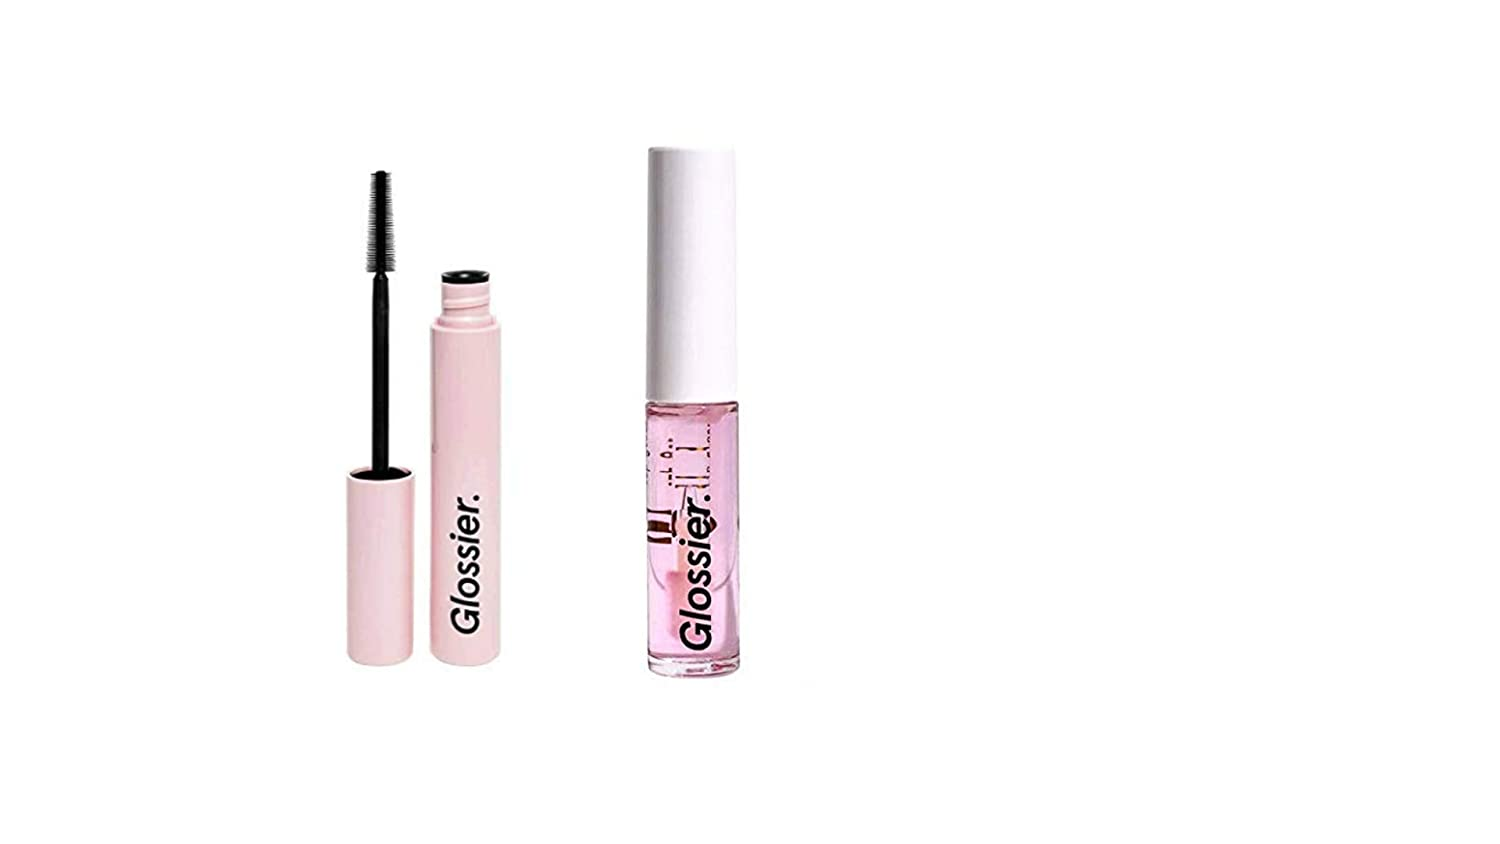 df811b9b16c Amazon.com : Glossier Lip Gloss Lash Slick Set! Glossier Lip Gloss Clear  Size 0.14 fl oz / 4.2 ml! Glossier Lash Slick Size 8.5 g/0.29 oz Shade Black !